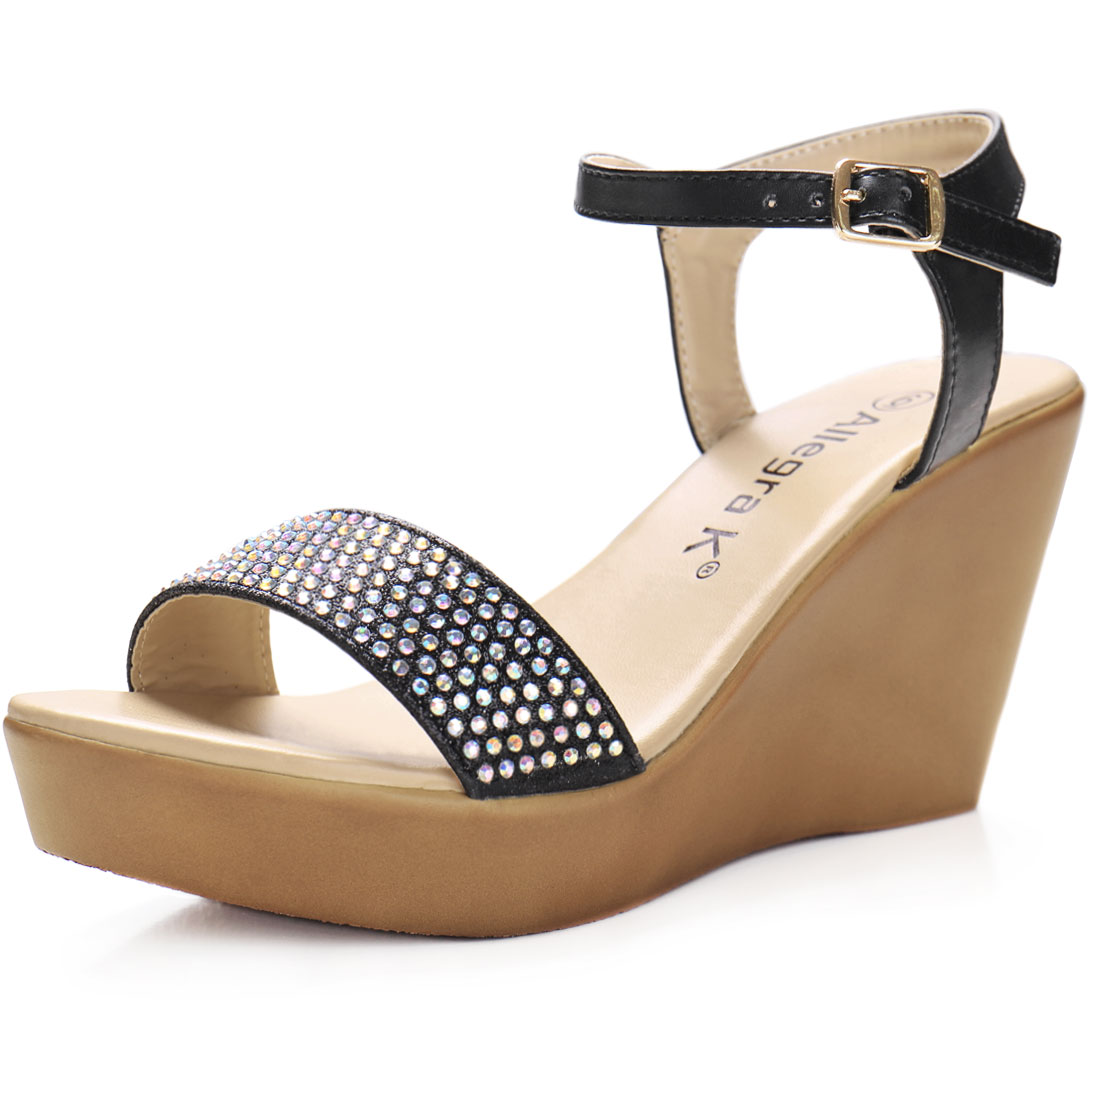 Woman Rhinestones Embellished Open Toe Wedge Sandals Black US 11